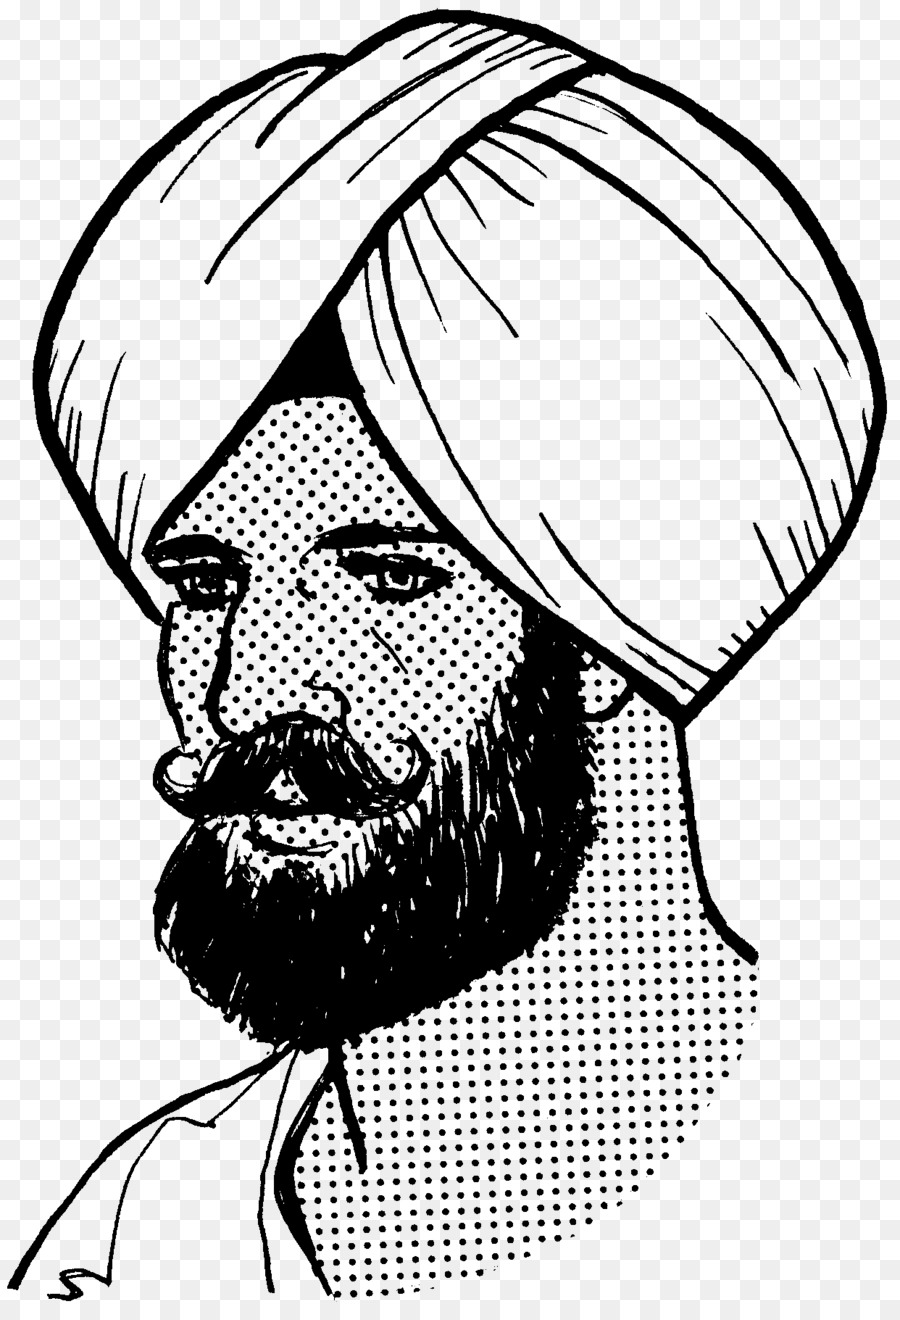 Sikh clipart clip art library download Hair Cartoon png download - 1242*1817 - Free Transparent ... clip art library download